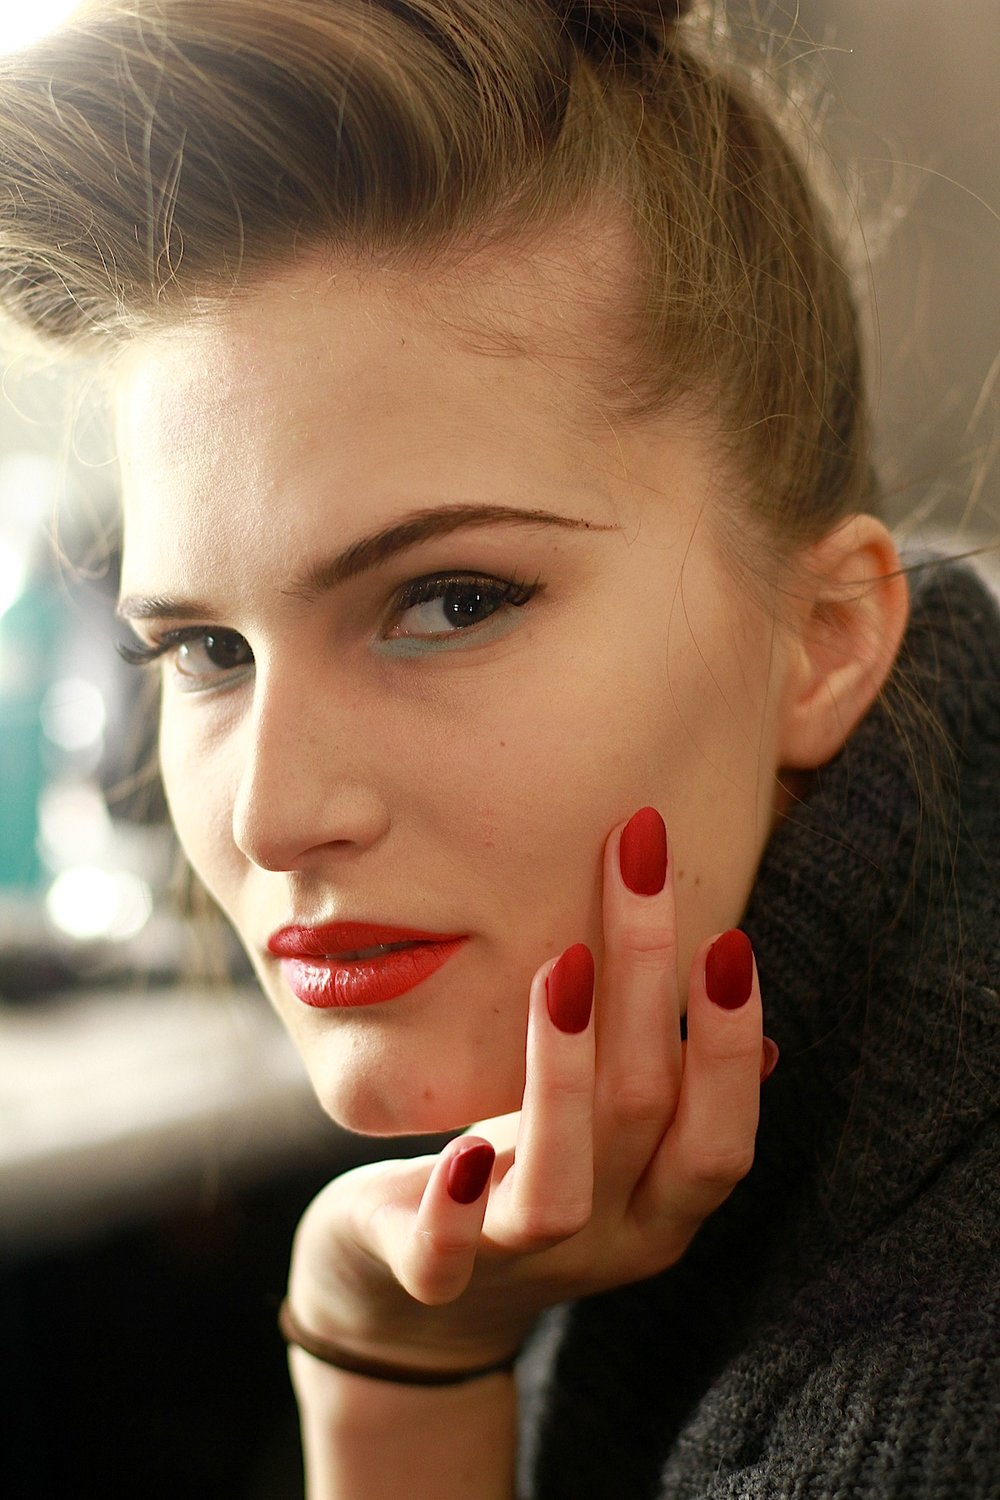 Matte red is retro delicious ... backstage at Badgley Mischka FW13 Hair: Moroccanoil; Makeup: M.A.C.; Nails: Deborah Lippmann Image: The Greyest Ghost for Cult of Pretty